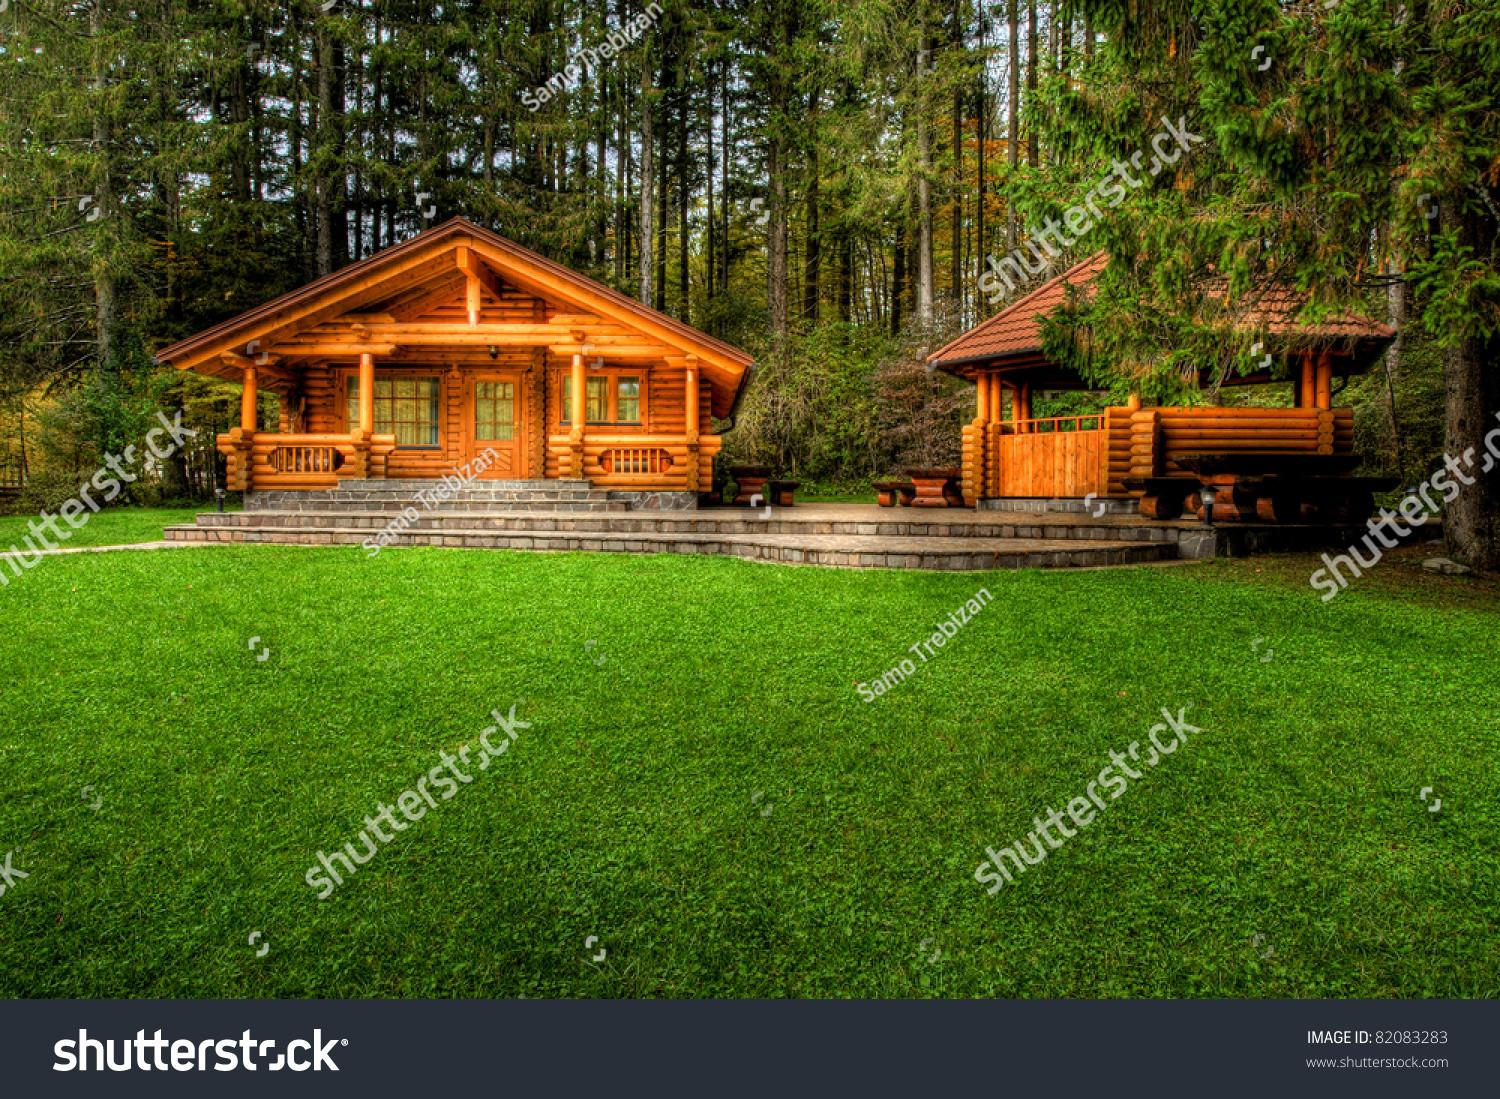 Holiday Apartment Wooden Cottage Forest Stock